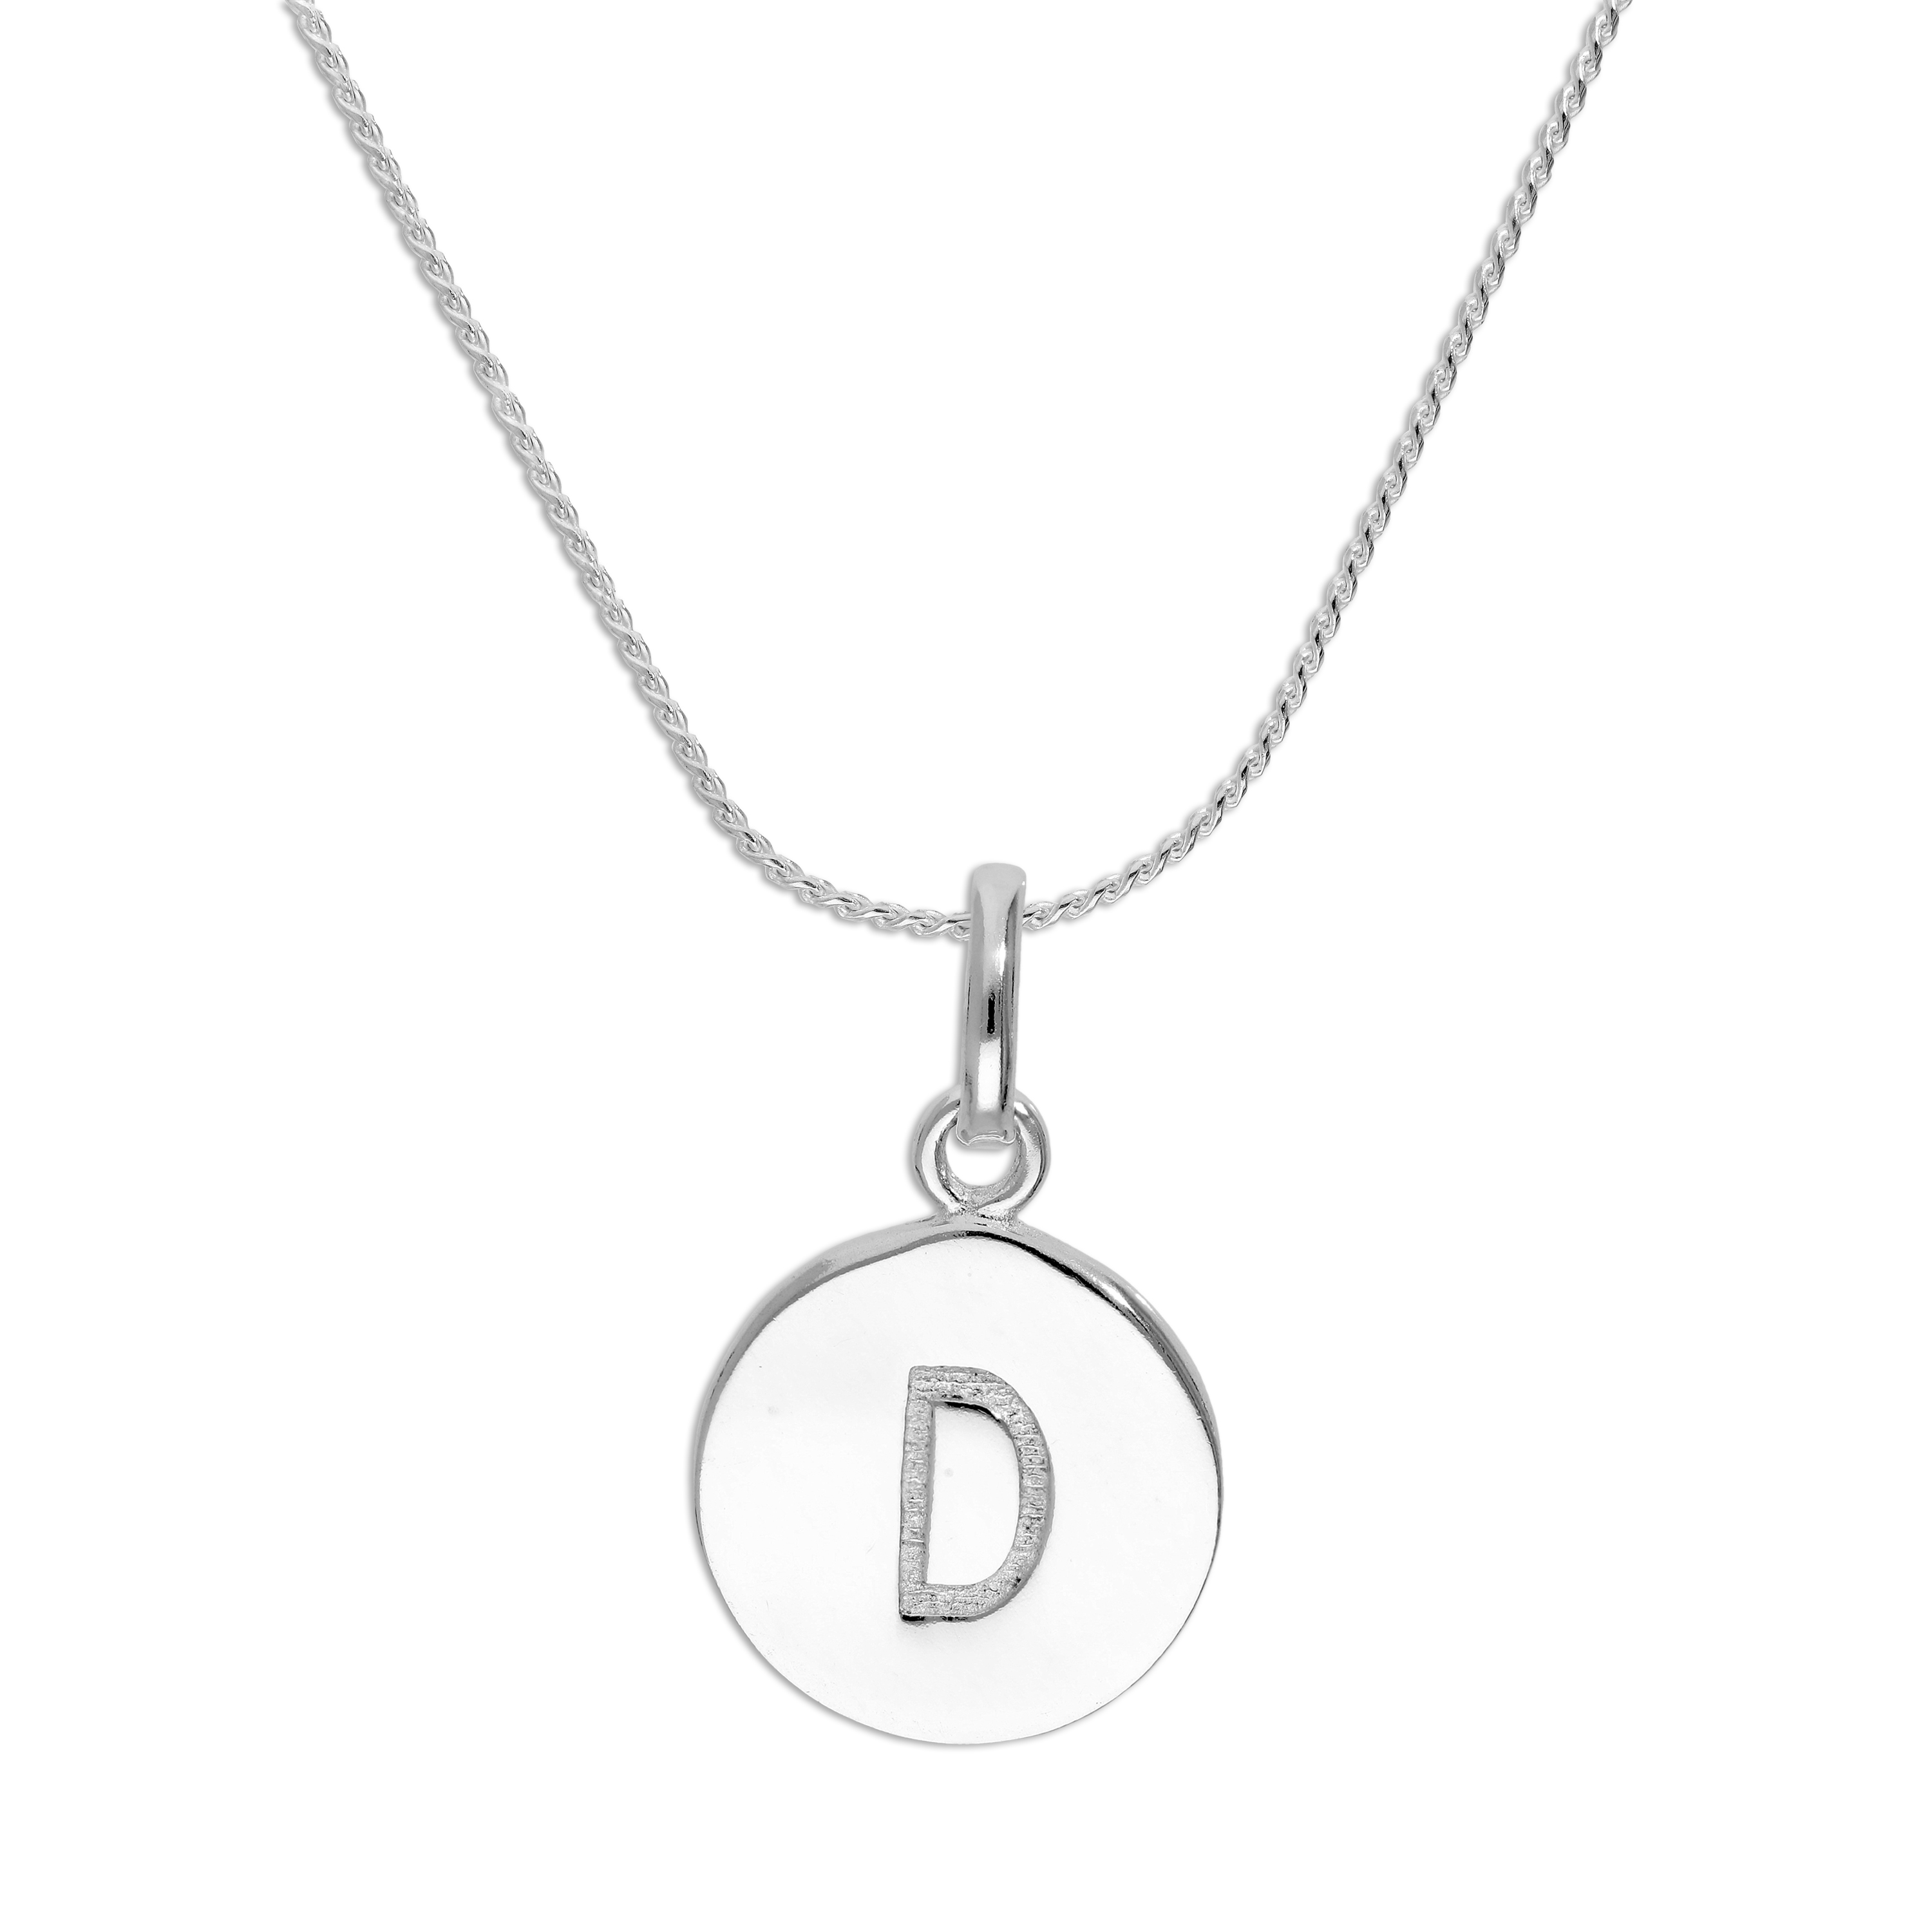 An image of Sterling Silver Initial Letter D Necklace 18 Inches Blue